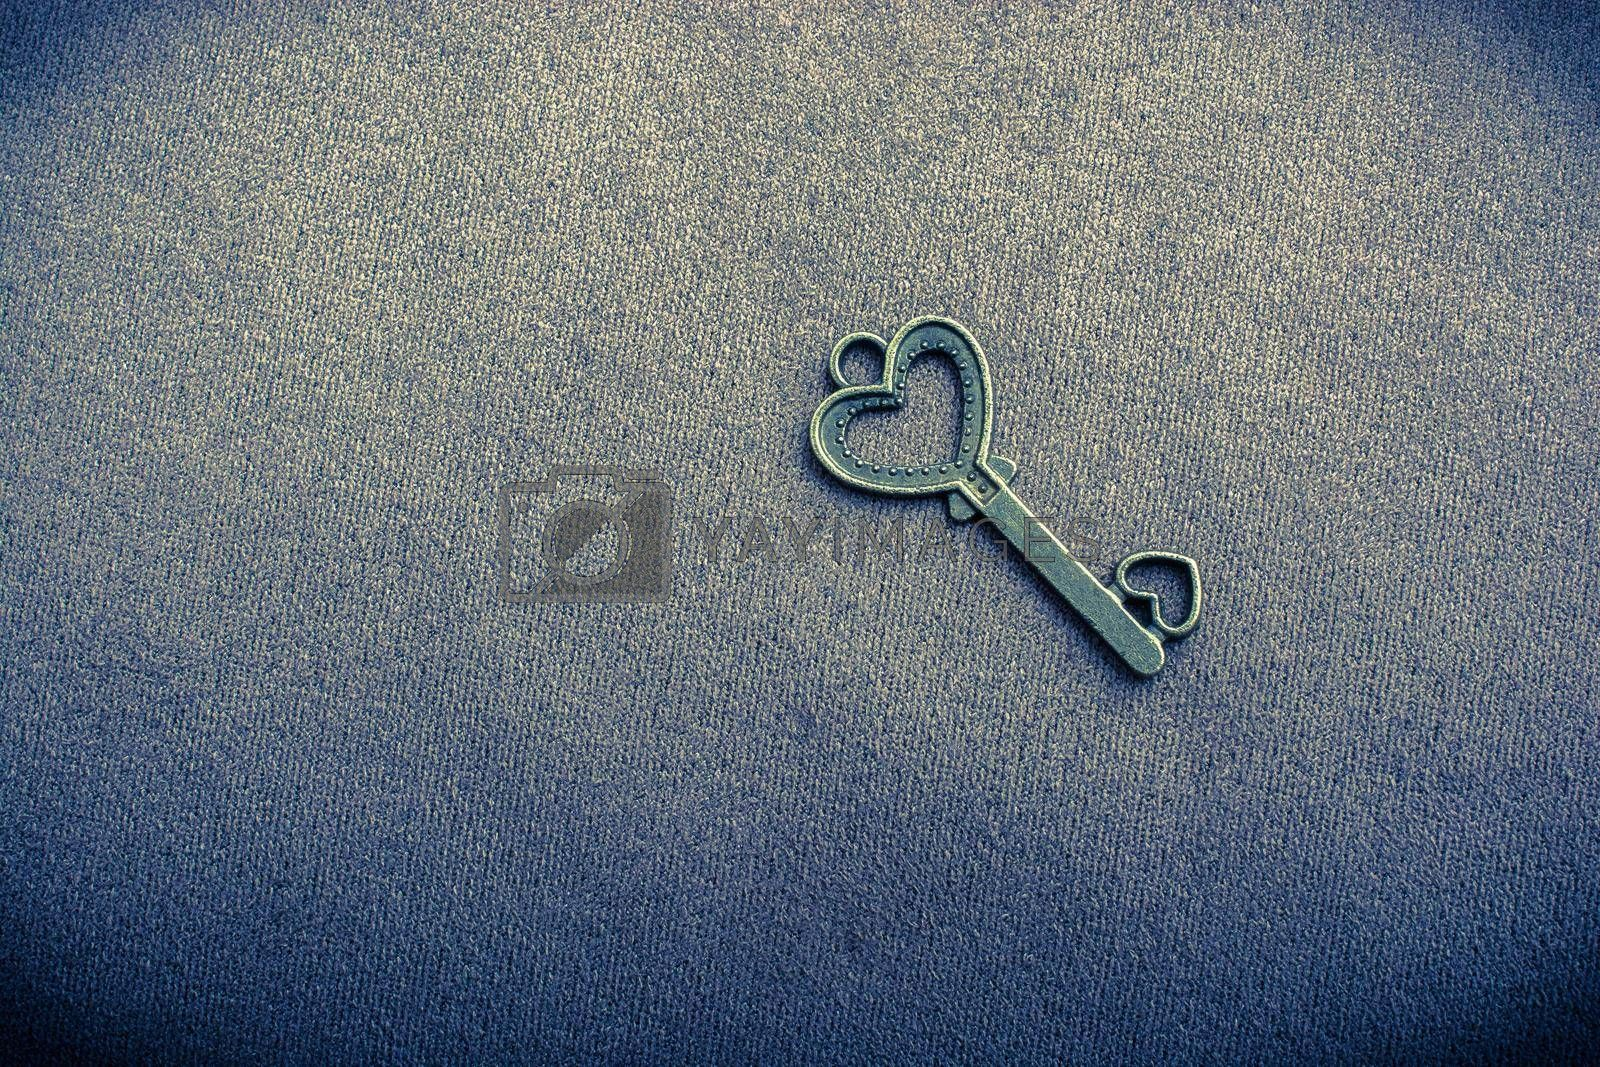 Heart shaped retro metal key on plain background